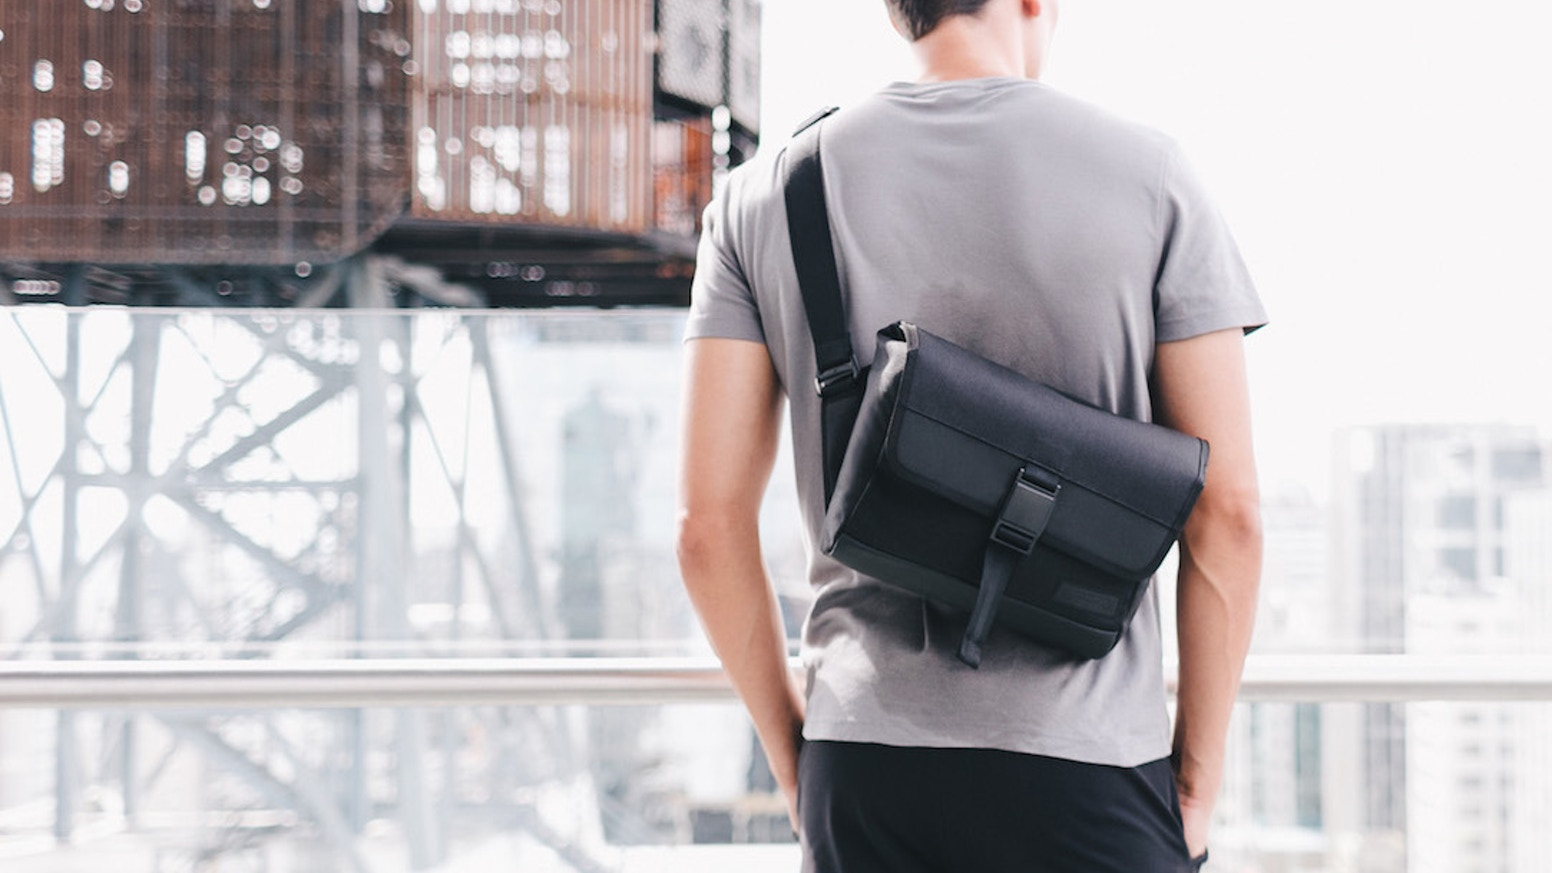 The perfect low-profile, quick-access day bag for light carry.